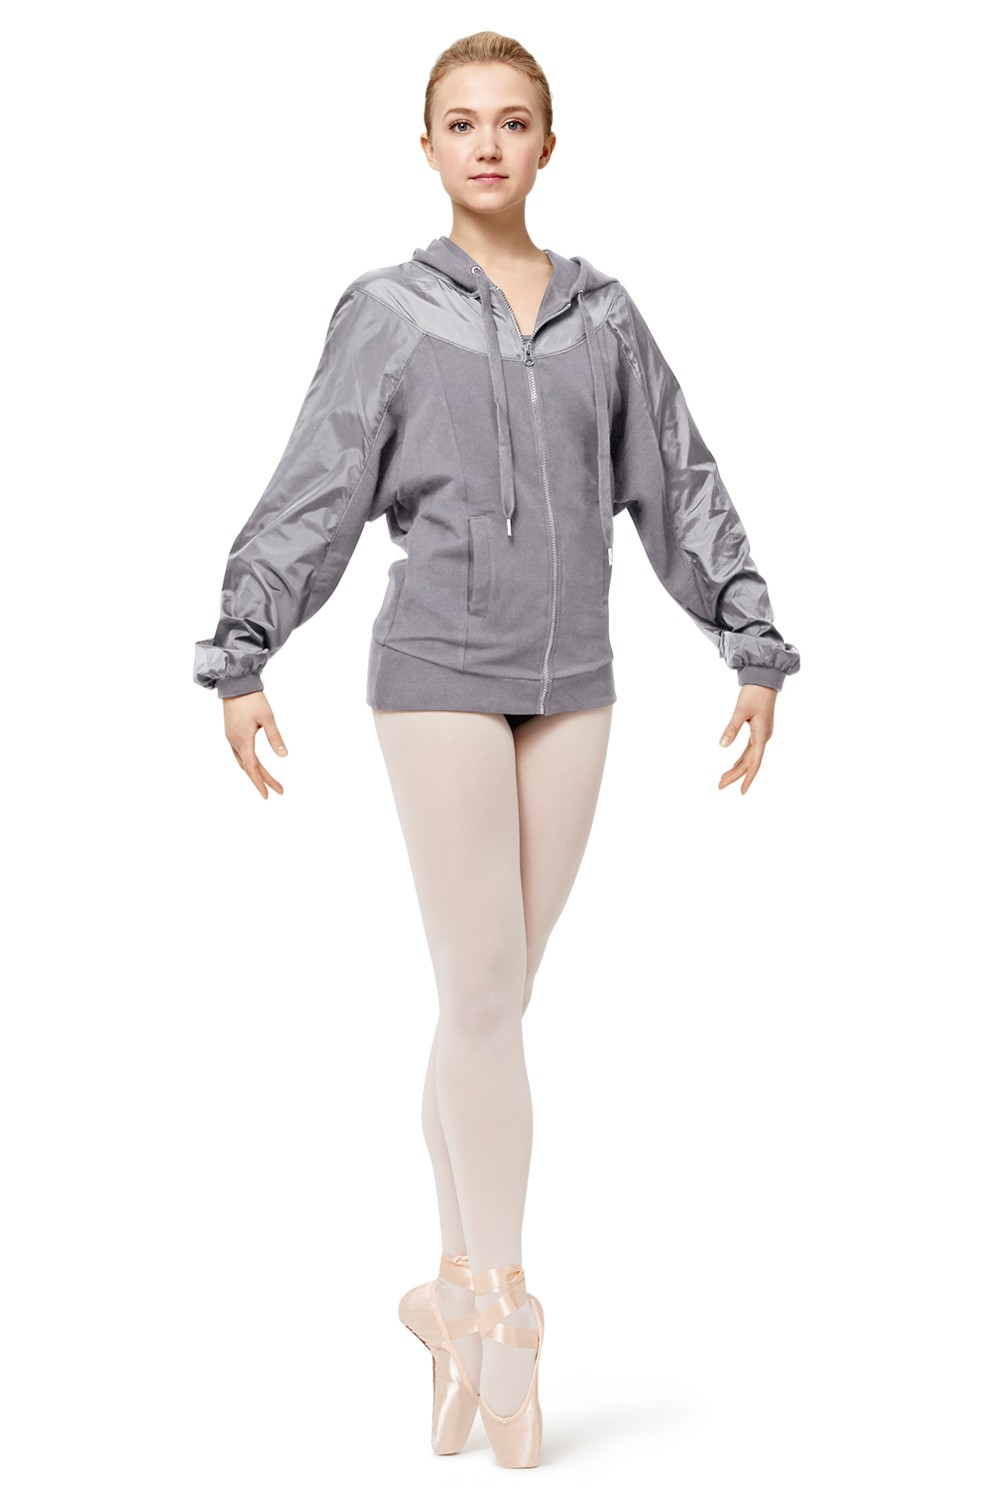 Zip Front Jacket Women's Dance Warmups